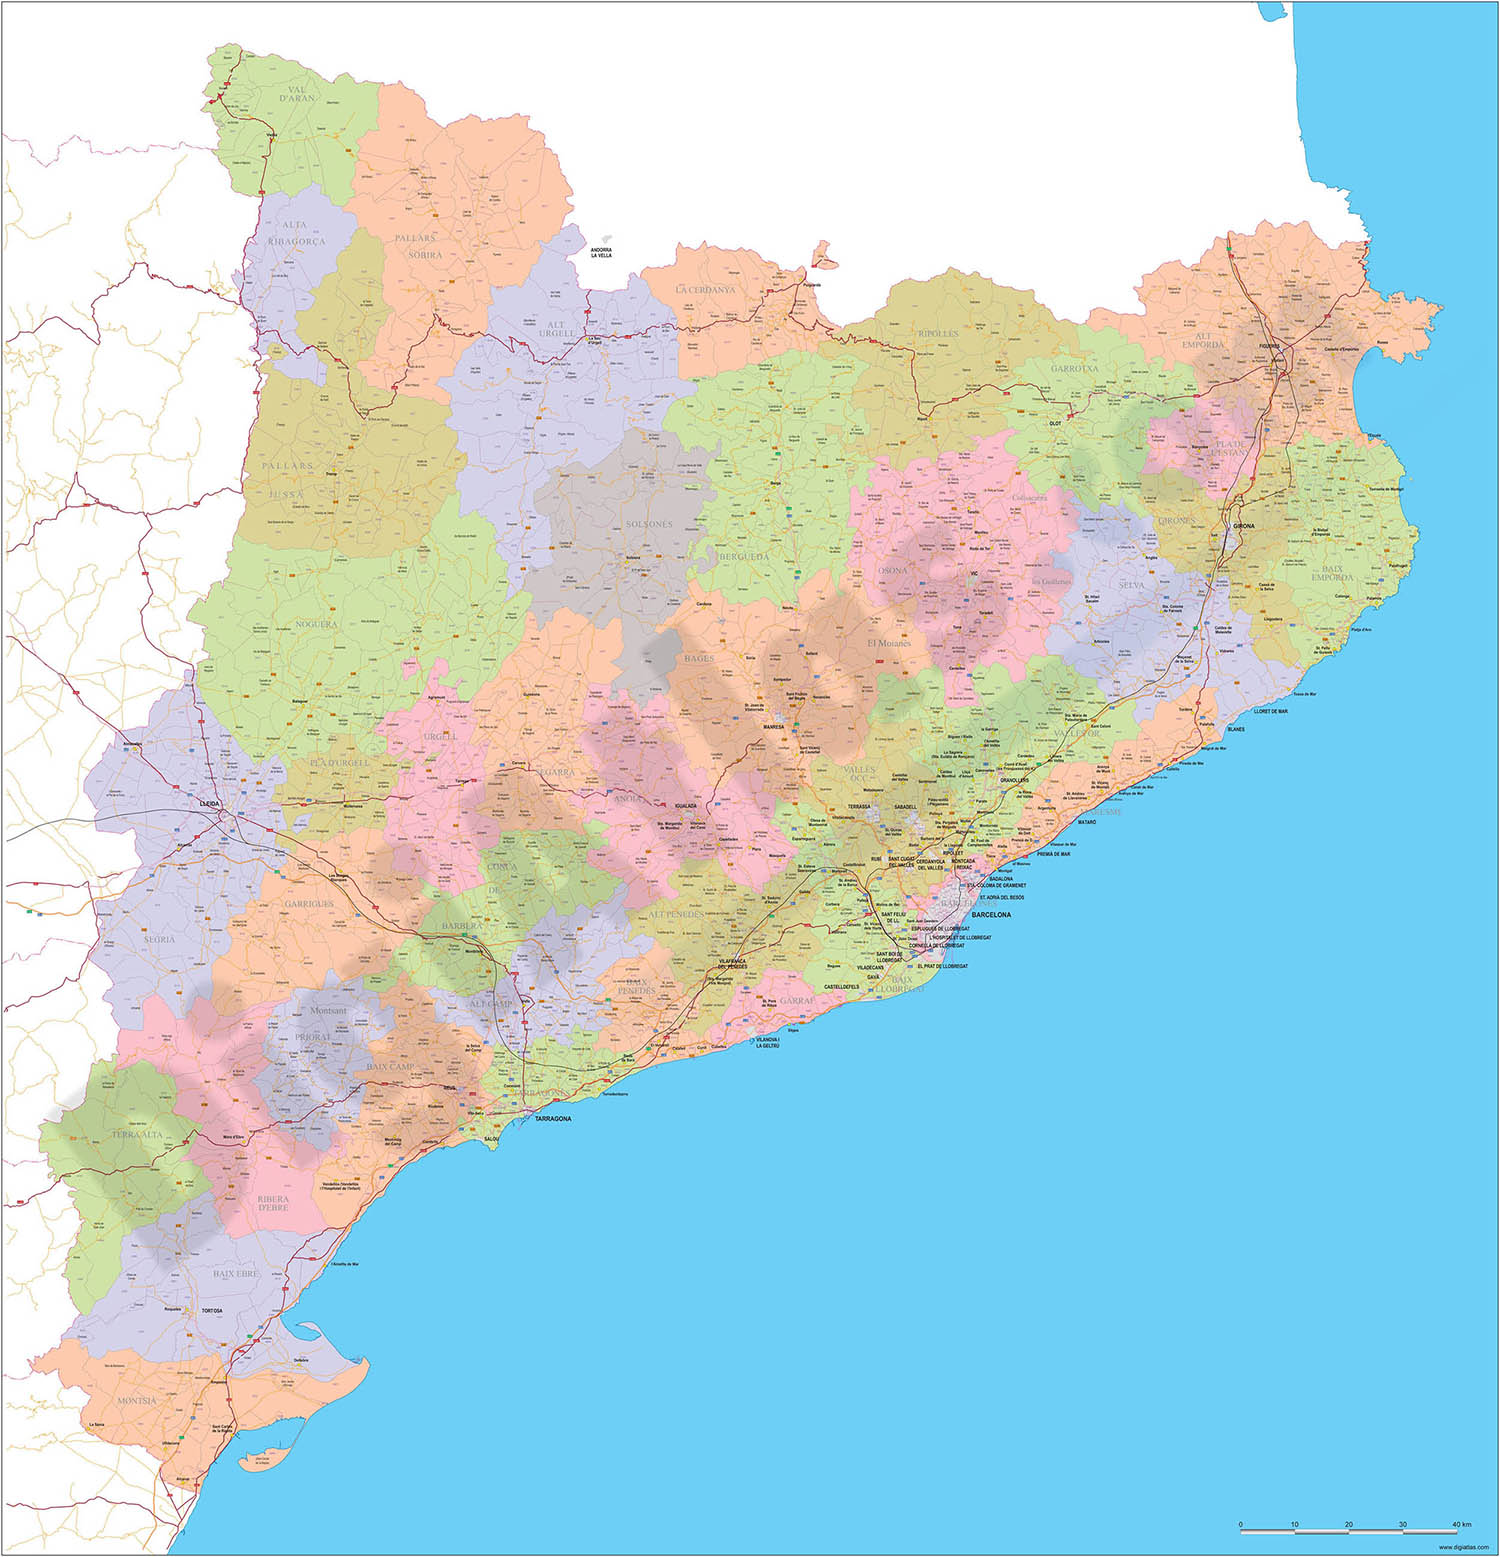 Catalonia - Map with postal codes, municipalities, comarcas and major roads